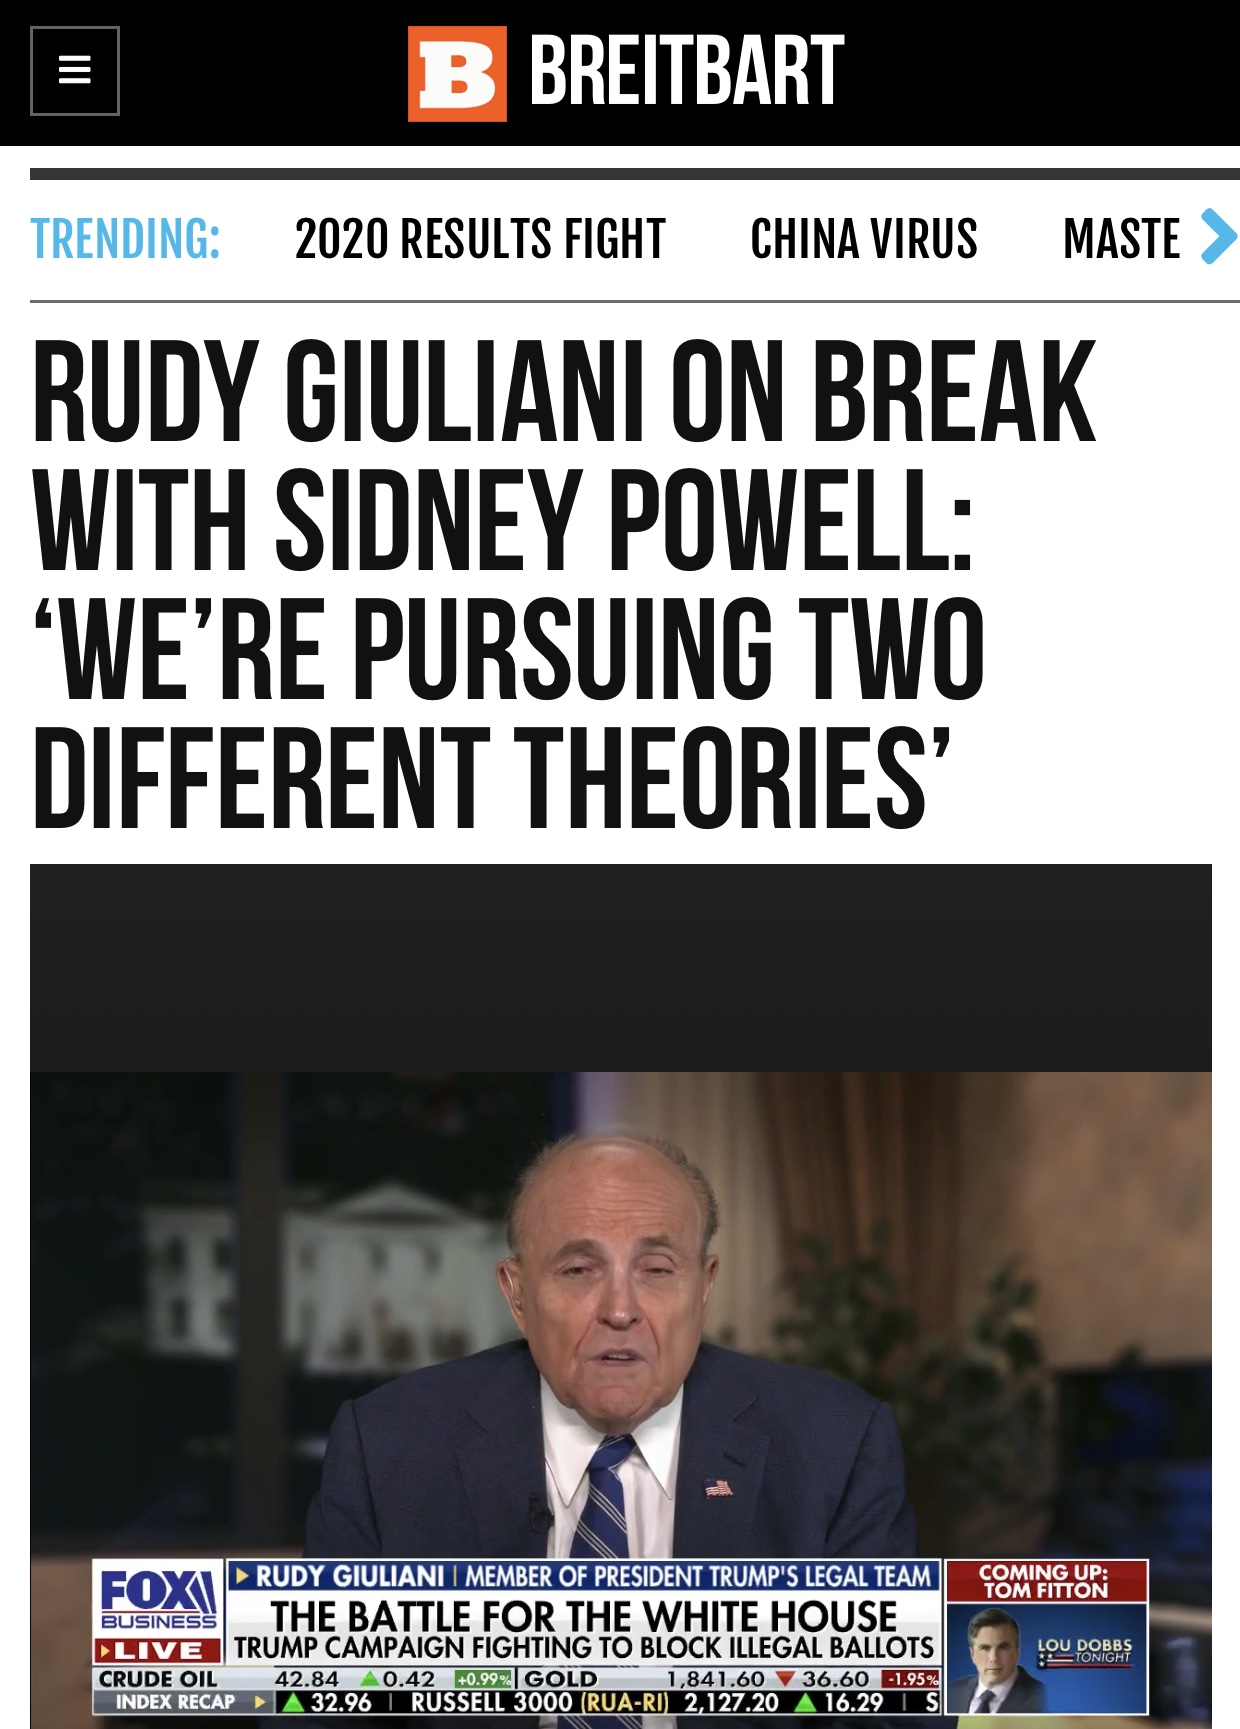 Rudy Giuliani on Break with Sidney Powell: 'We're Pursuing Two Different Theories'